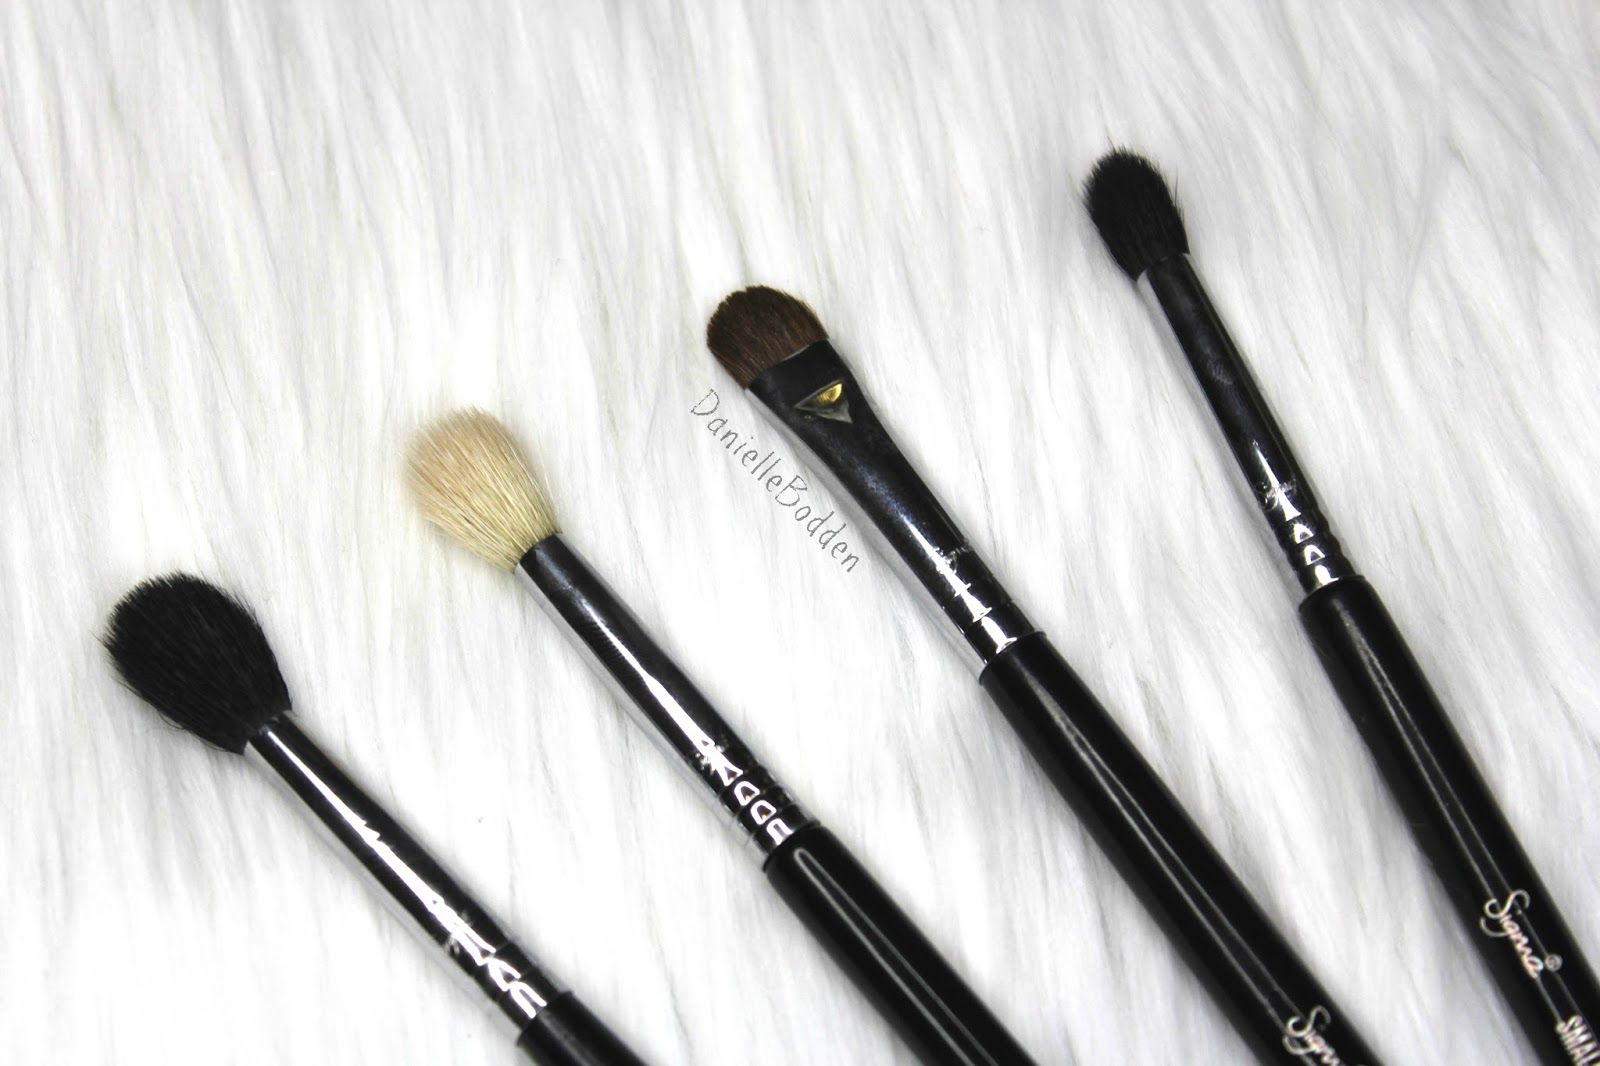 MUST have Sigma Beauty eye brushes! Danielle Bodden